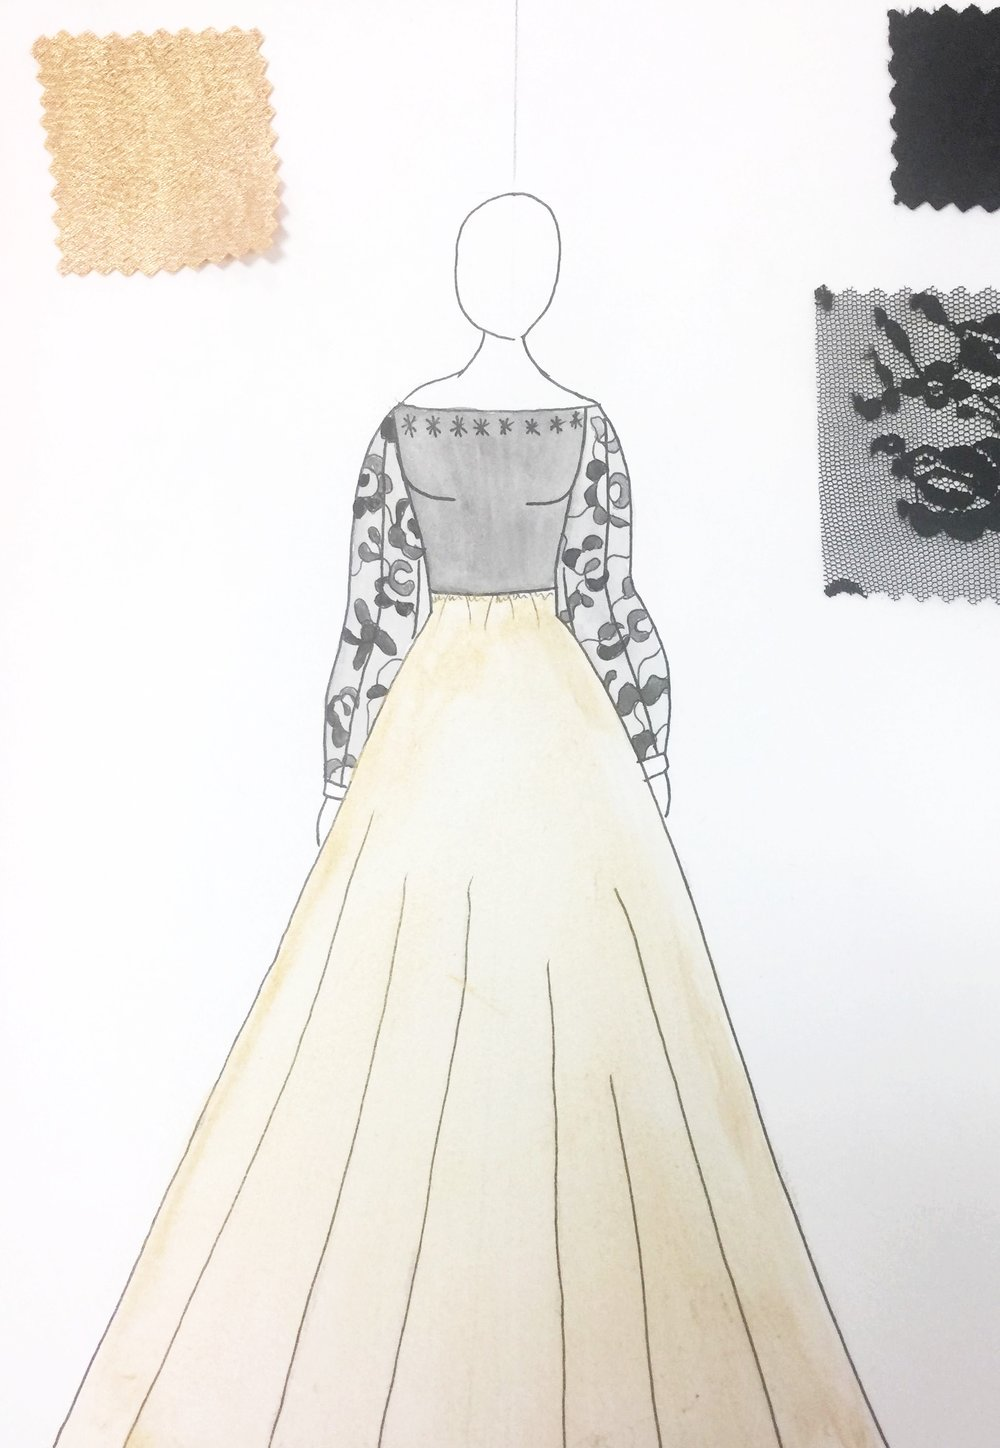 Sketch of finale piece for Katelyn and Gracie's upcoming collection.